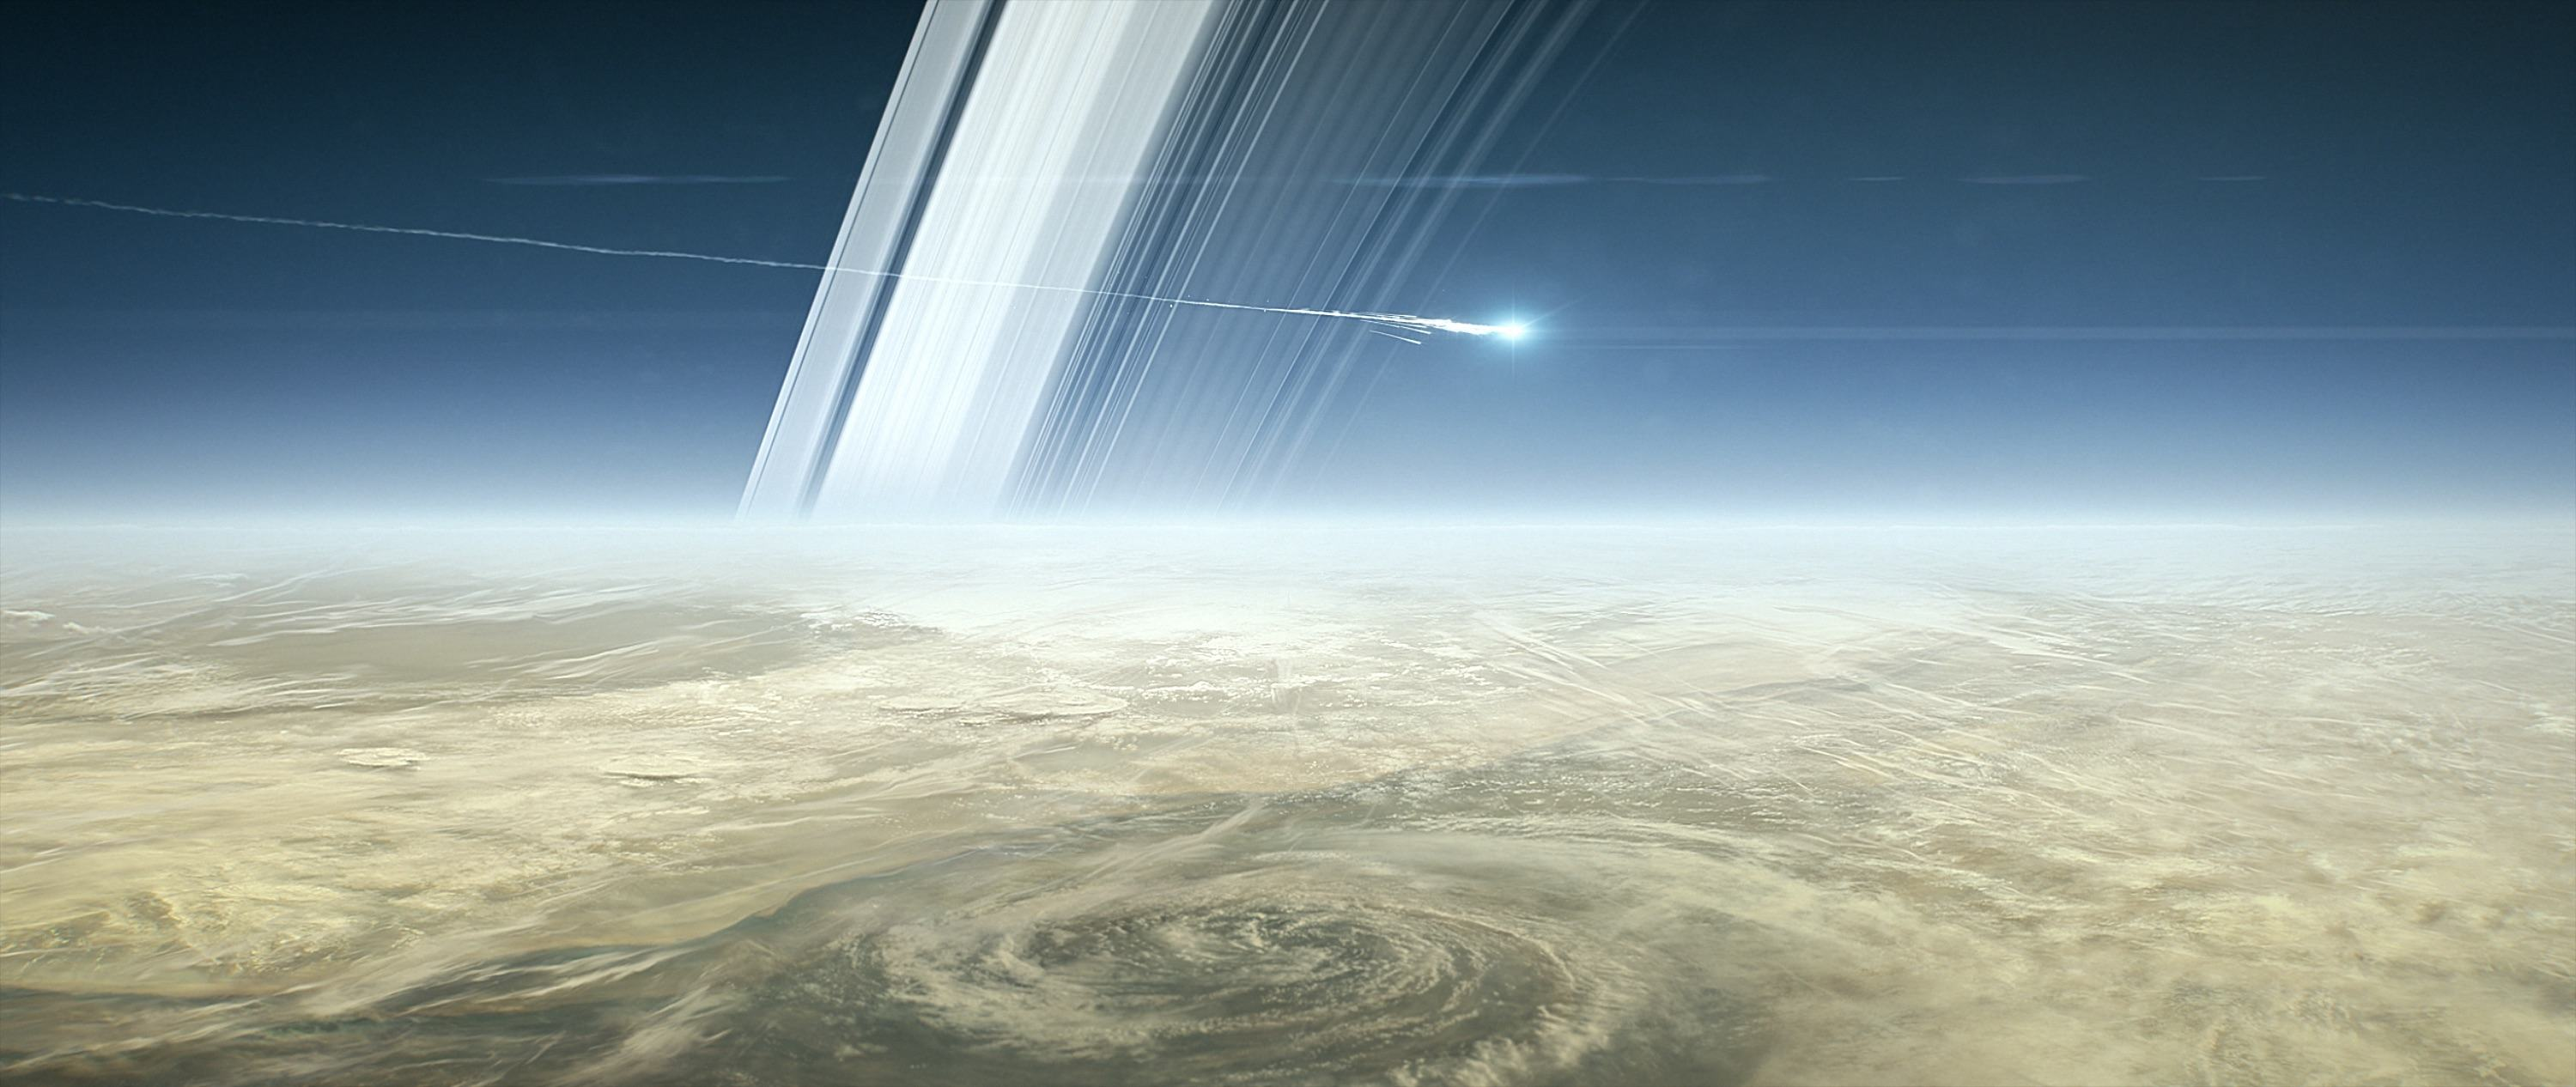 llustration of Cassini breaking up in Saturn's atmosphere. Image: NASA/JPL-Caltech